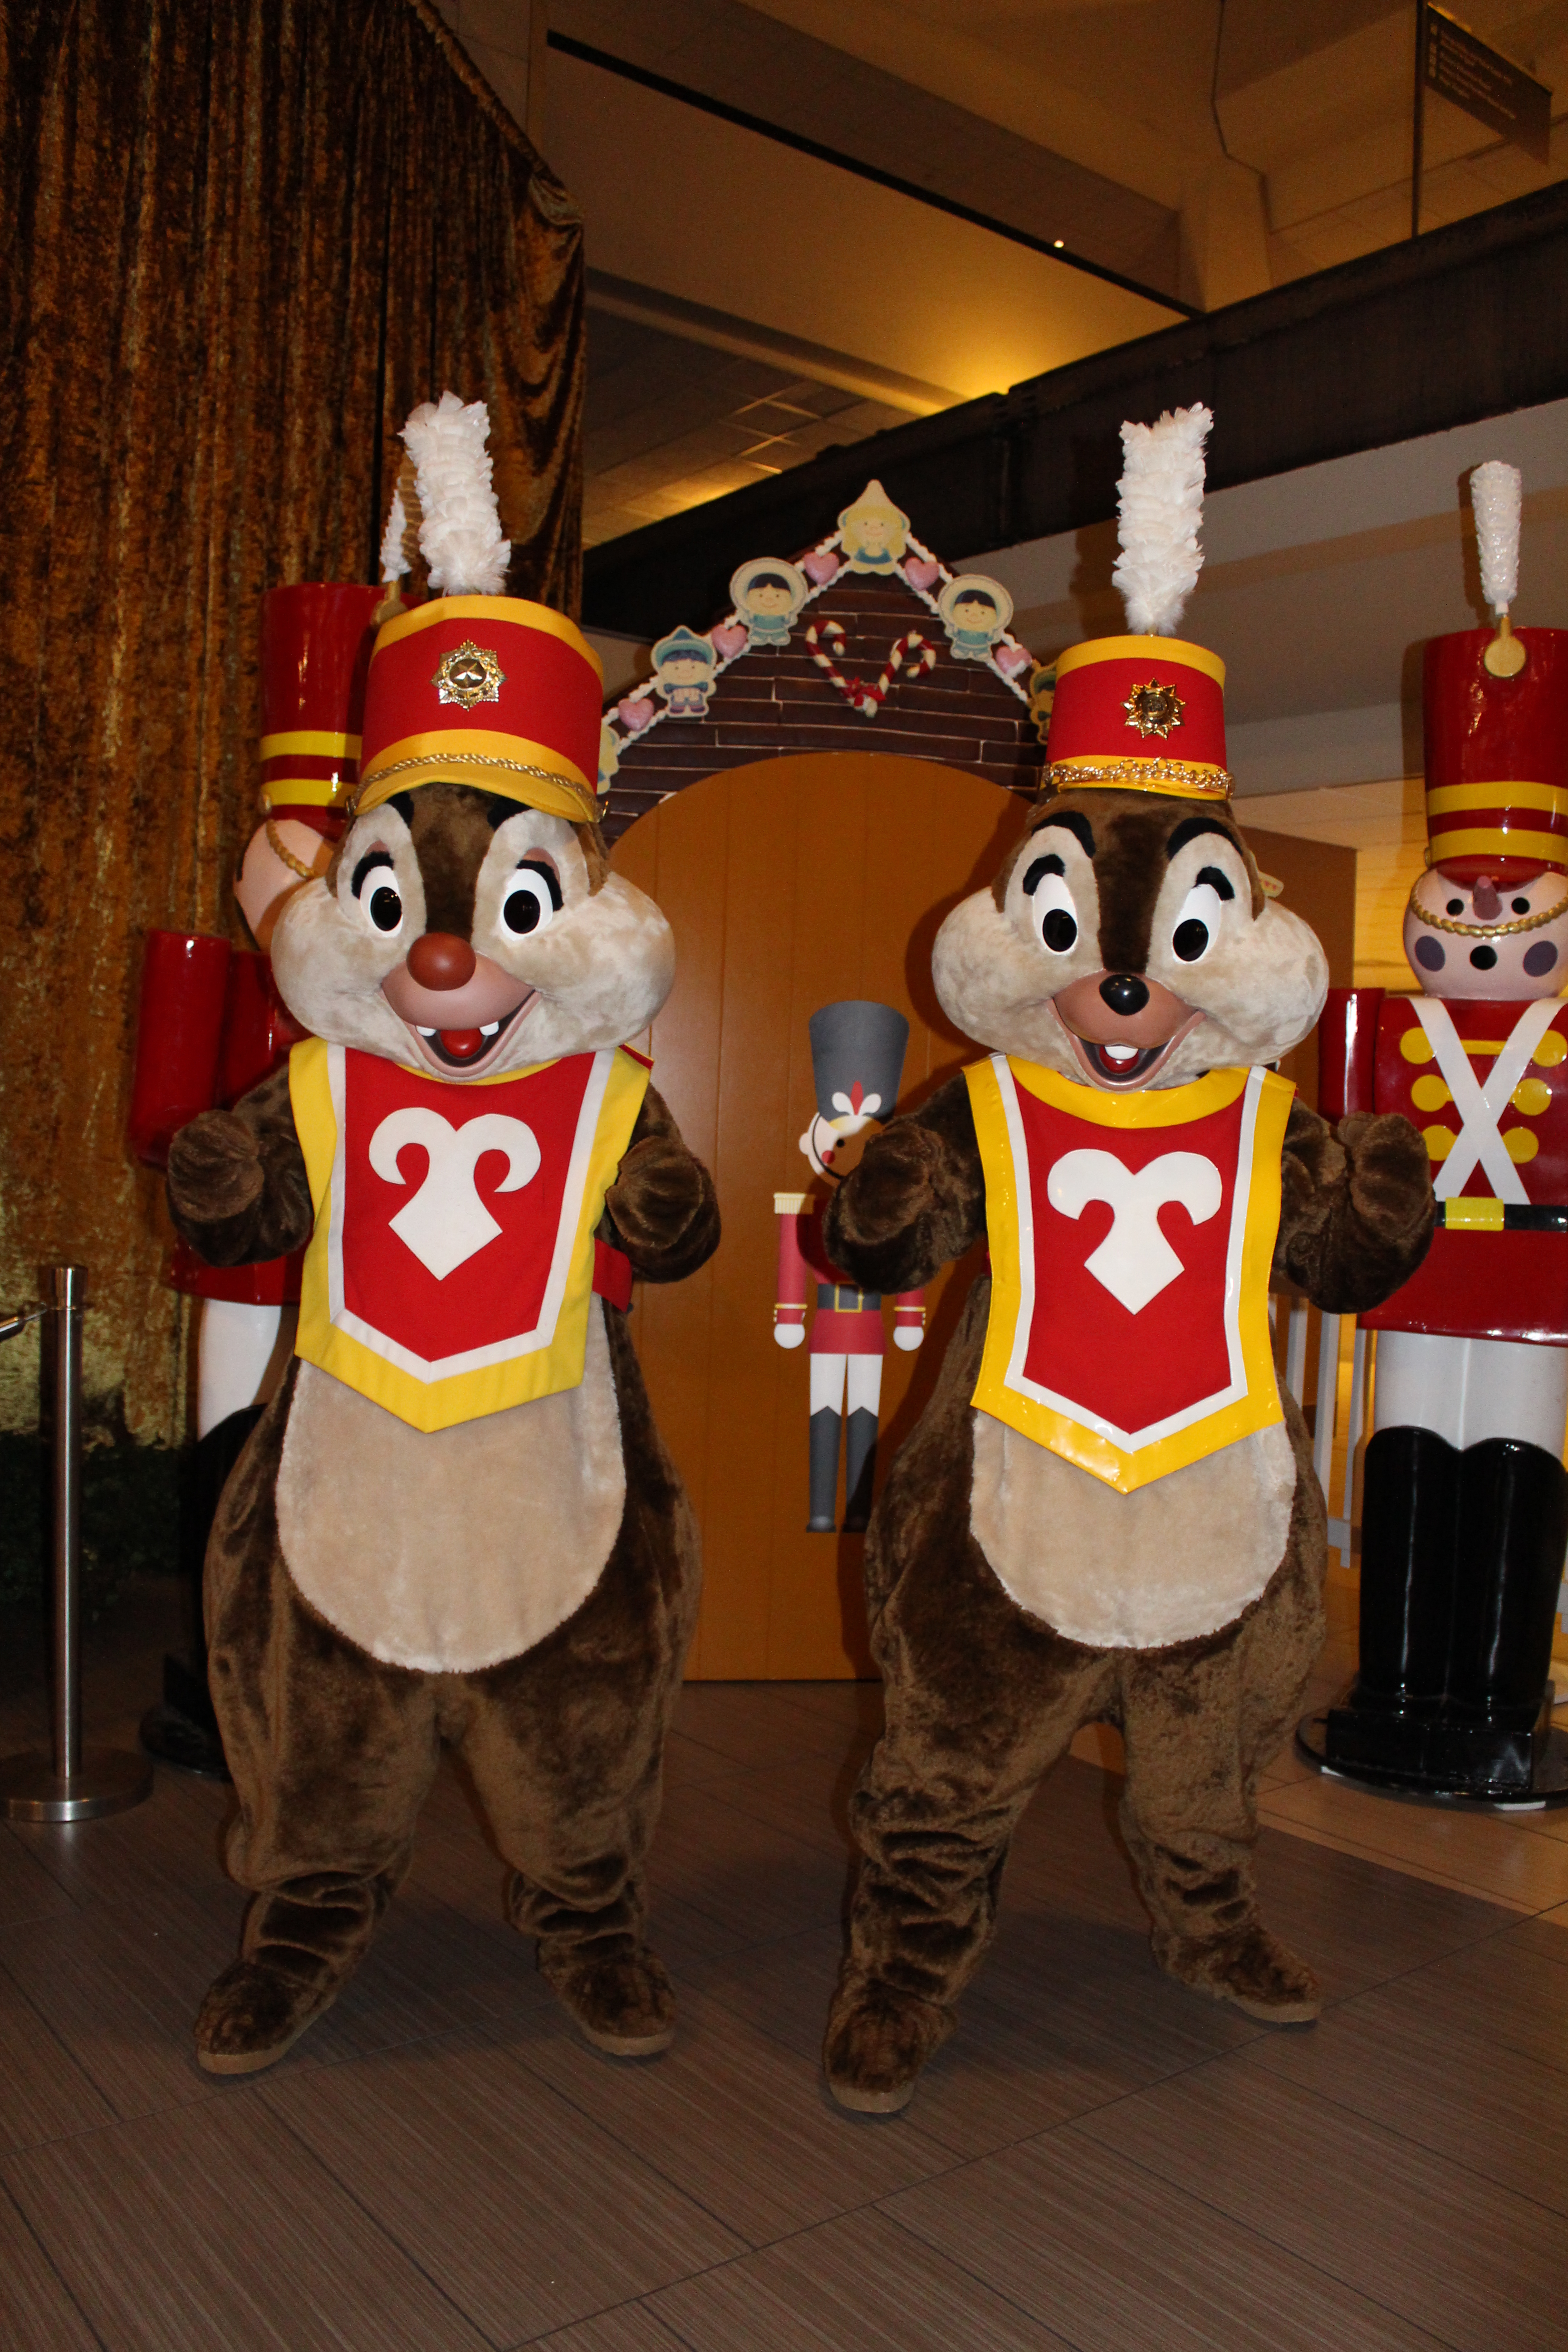 Band Chip 'n' Dale